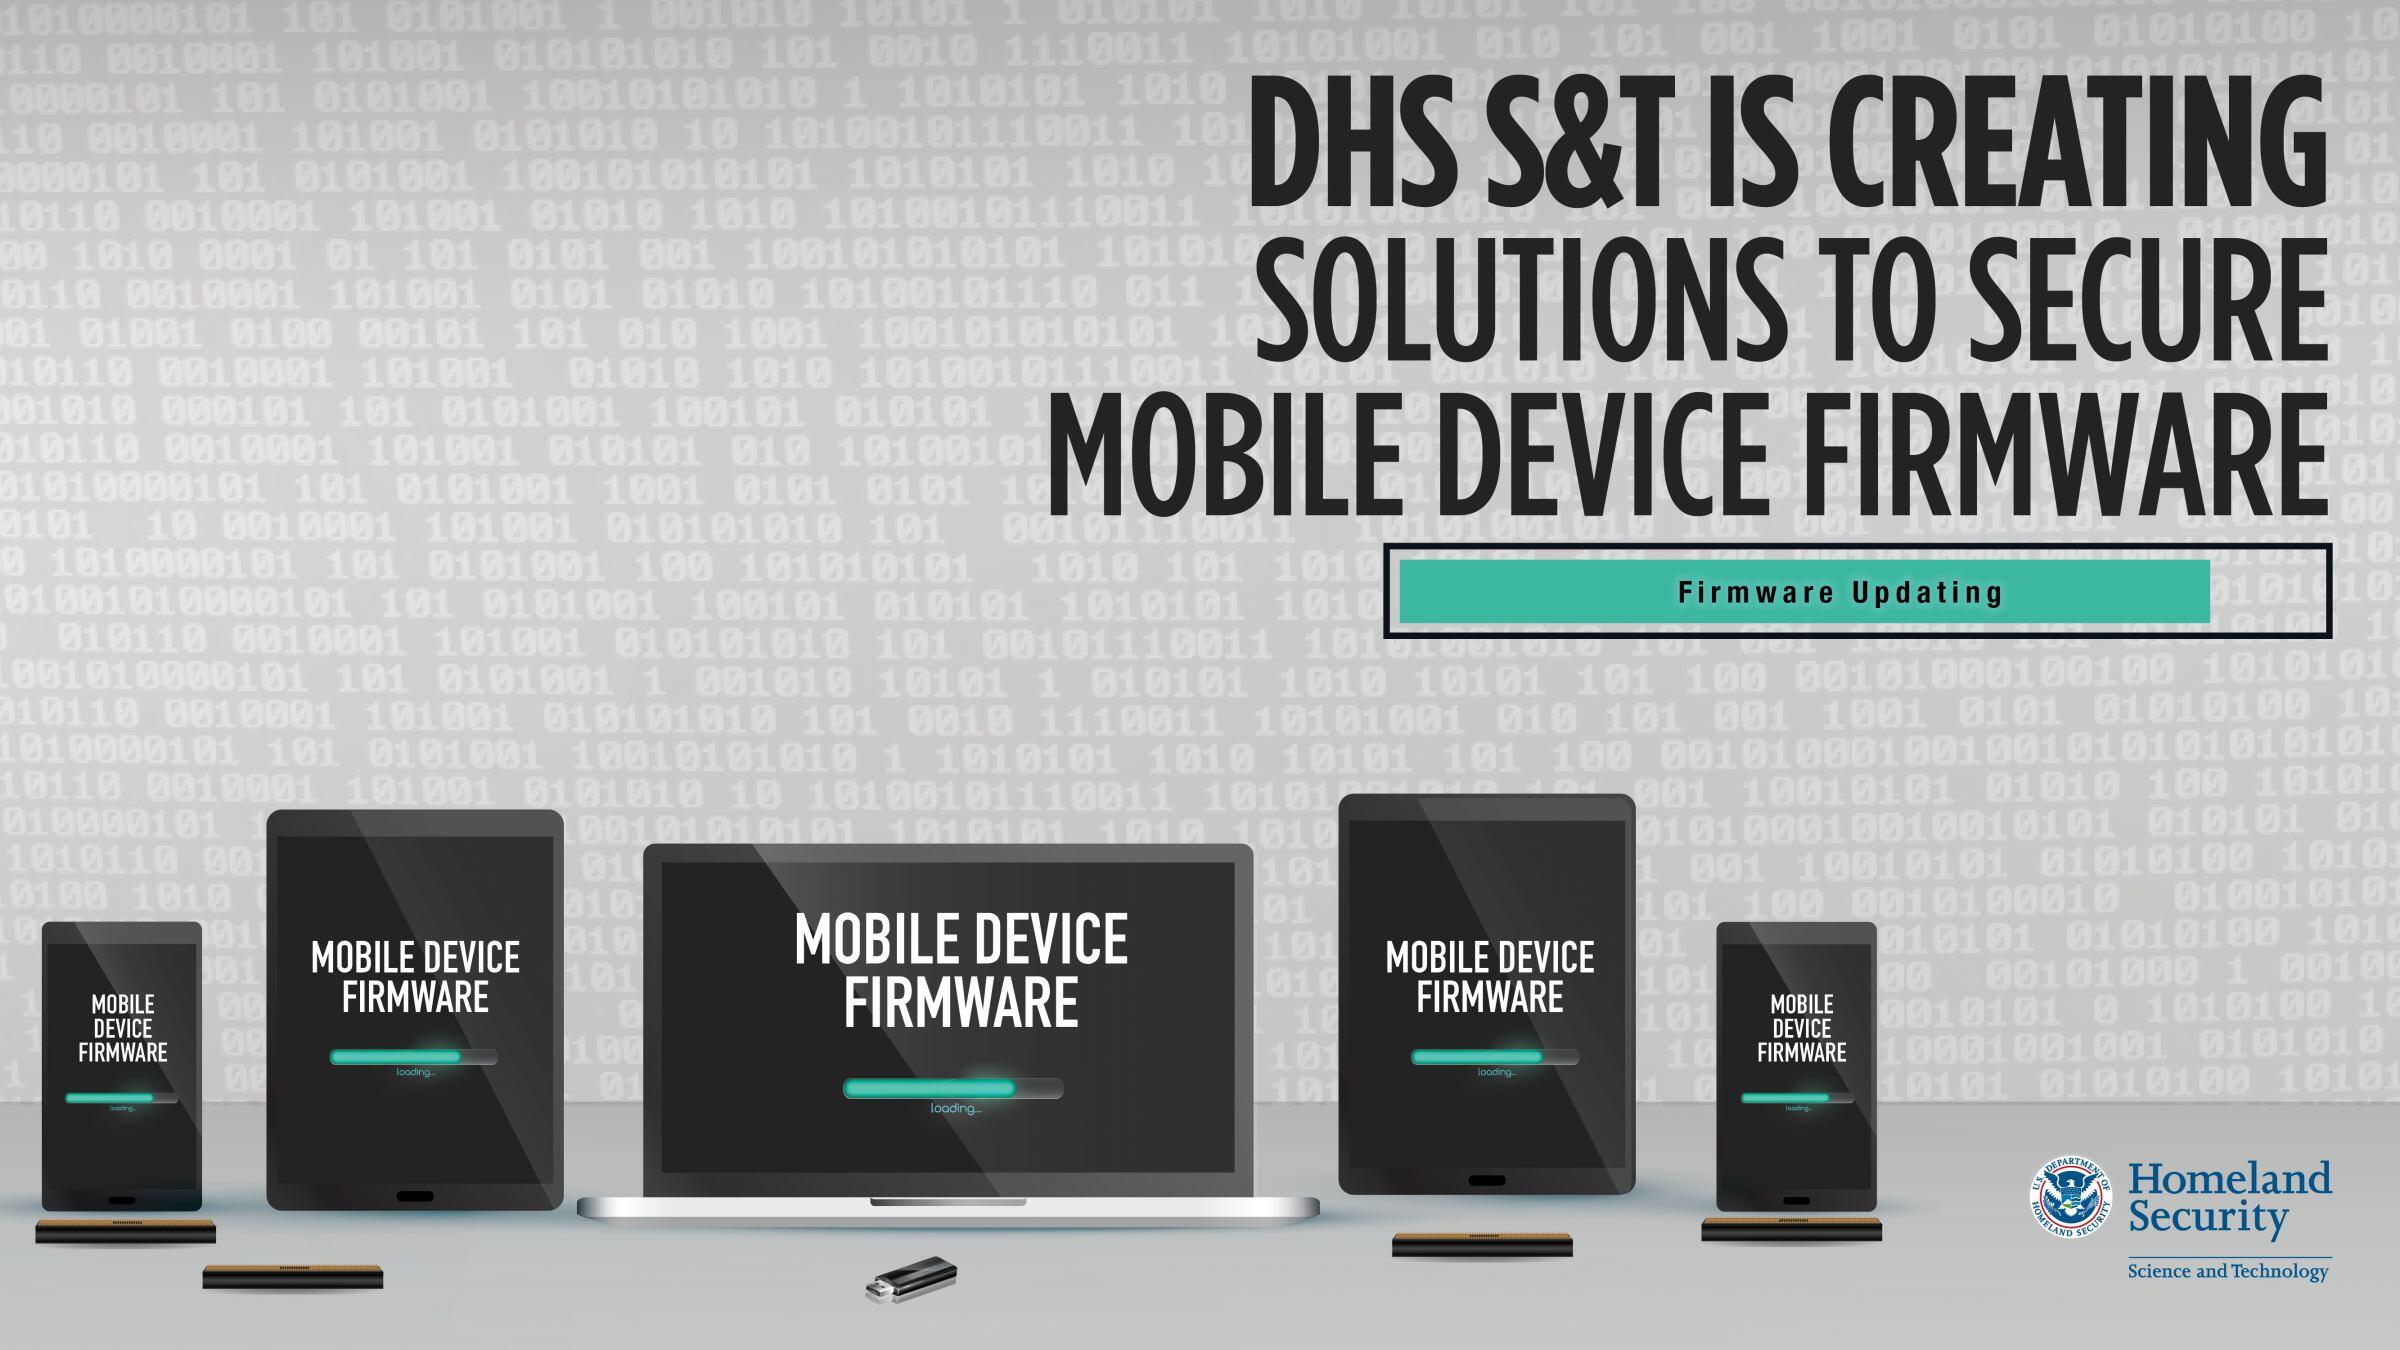 News Release: S&T Announces Four SBIR Awards to Secure Mobile Device